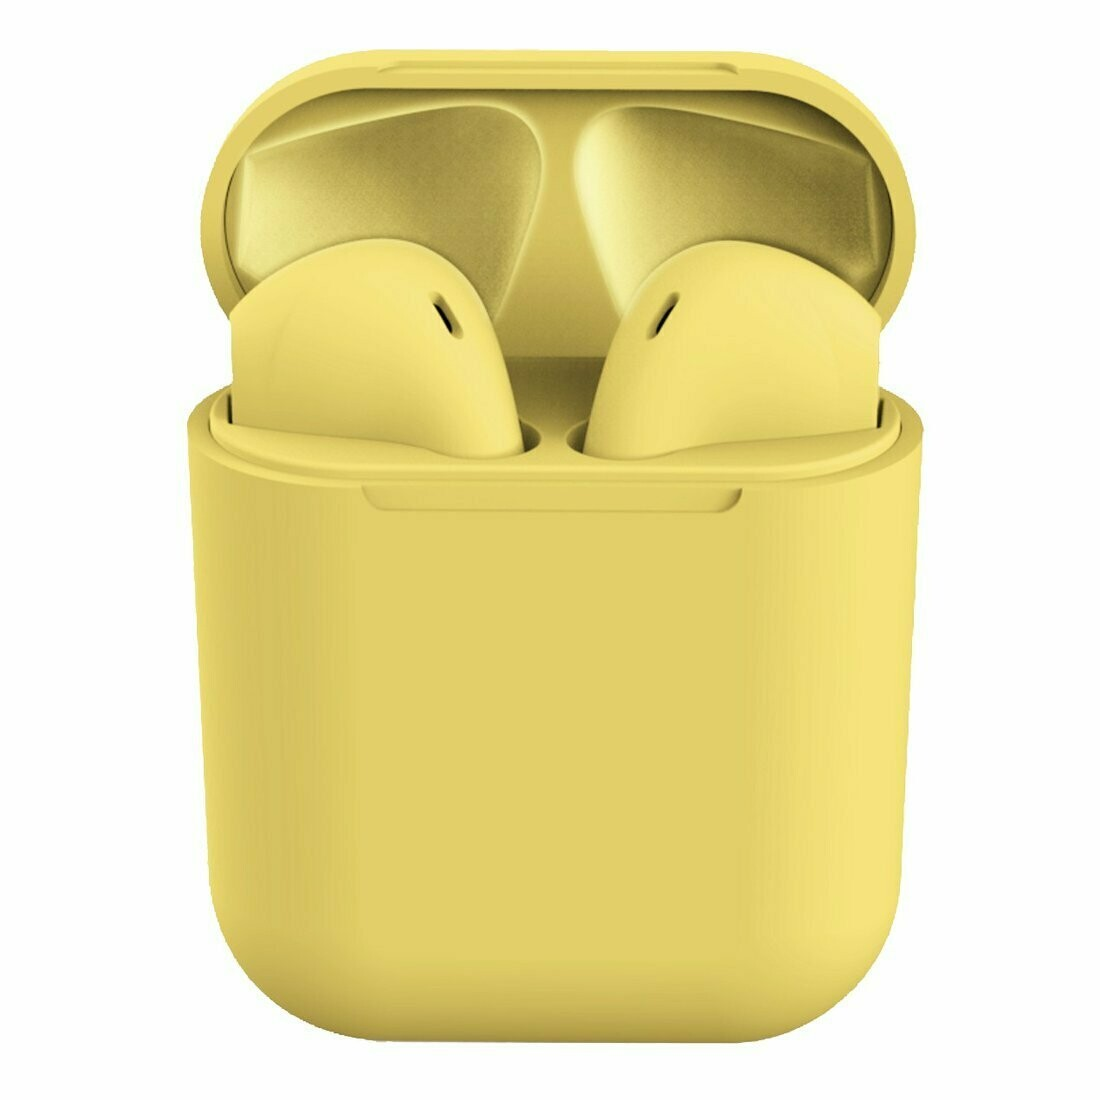 Inpods i12 TWS Earbuds Wireless Bluetooth V5.0 Touch Earphone Stereo Headphone With 300mAh Charge Box Earphone For iPhone Android Phones